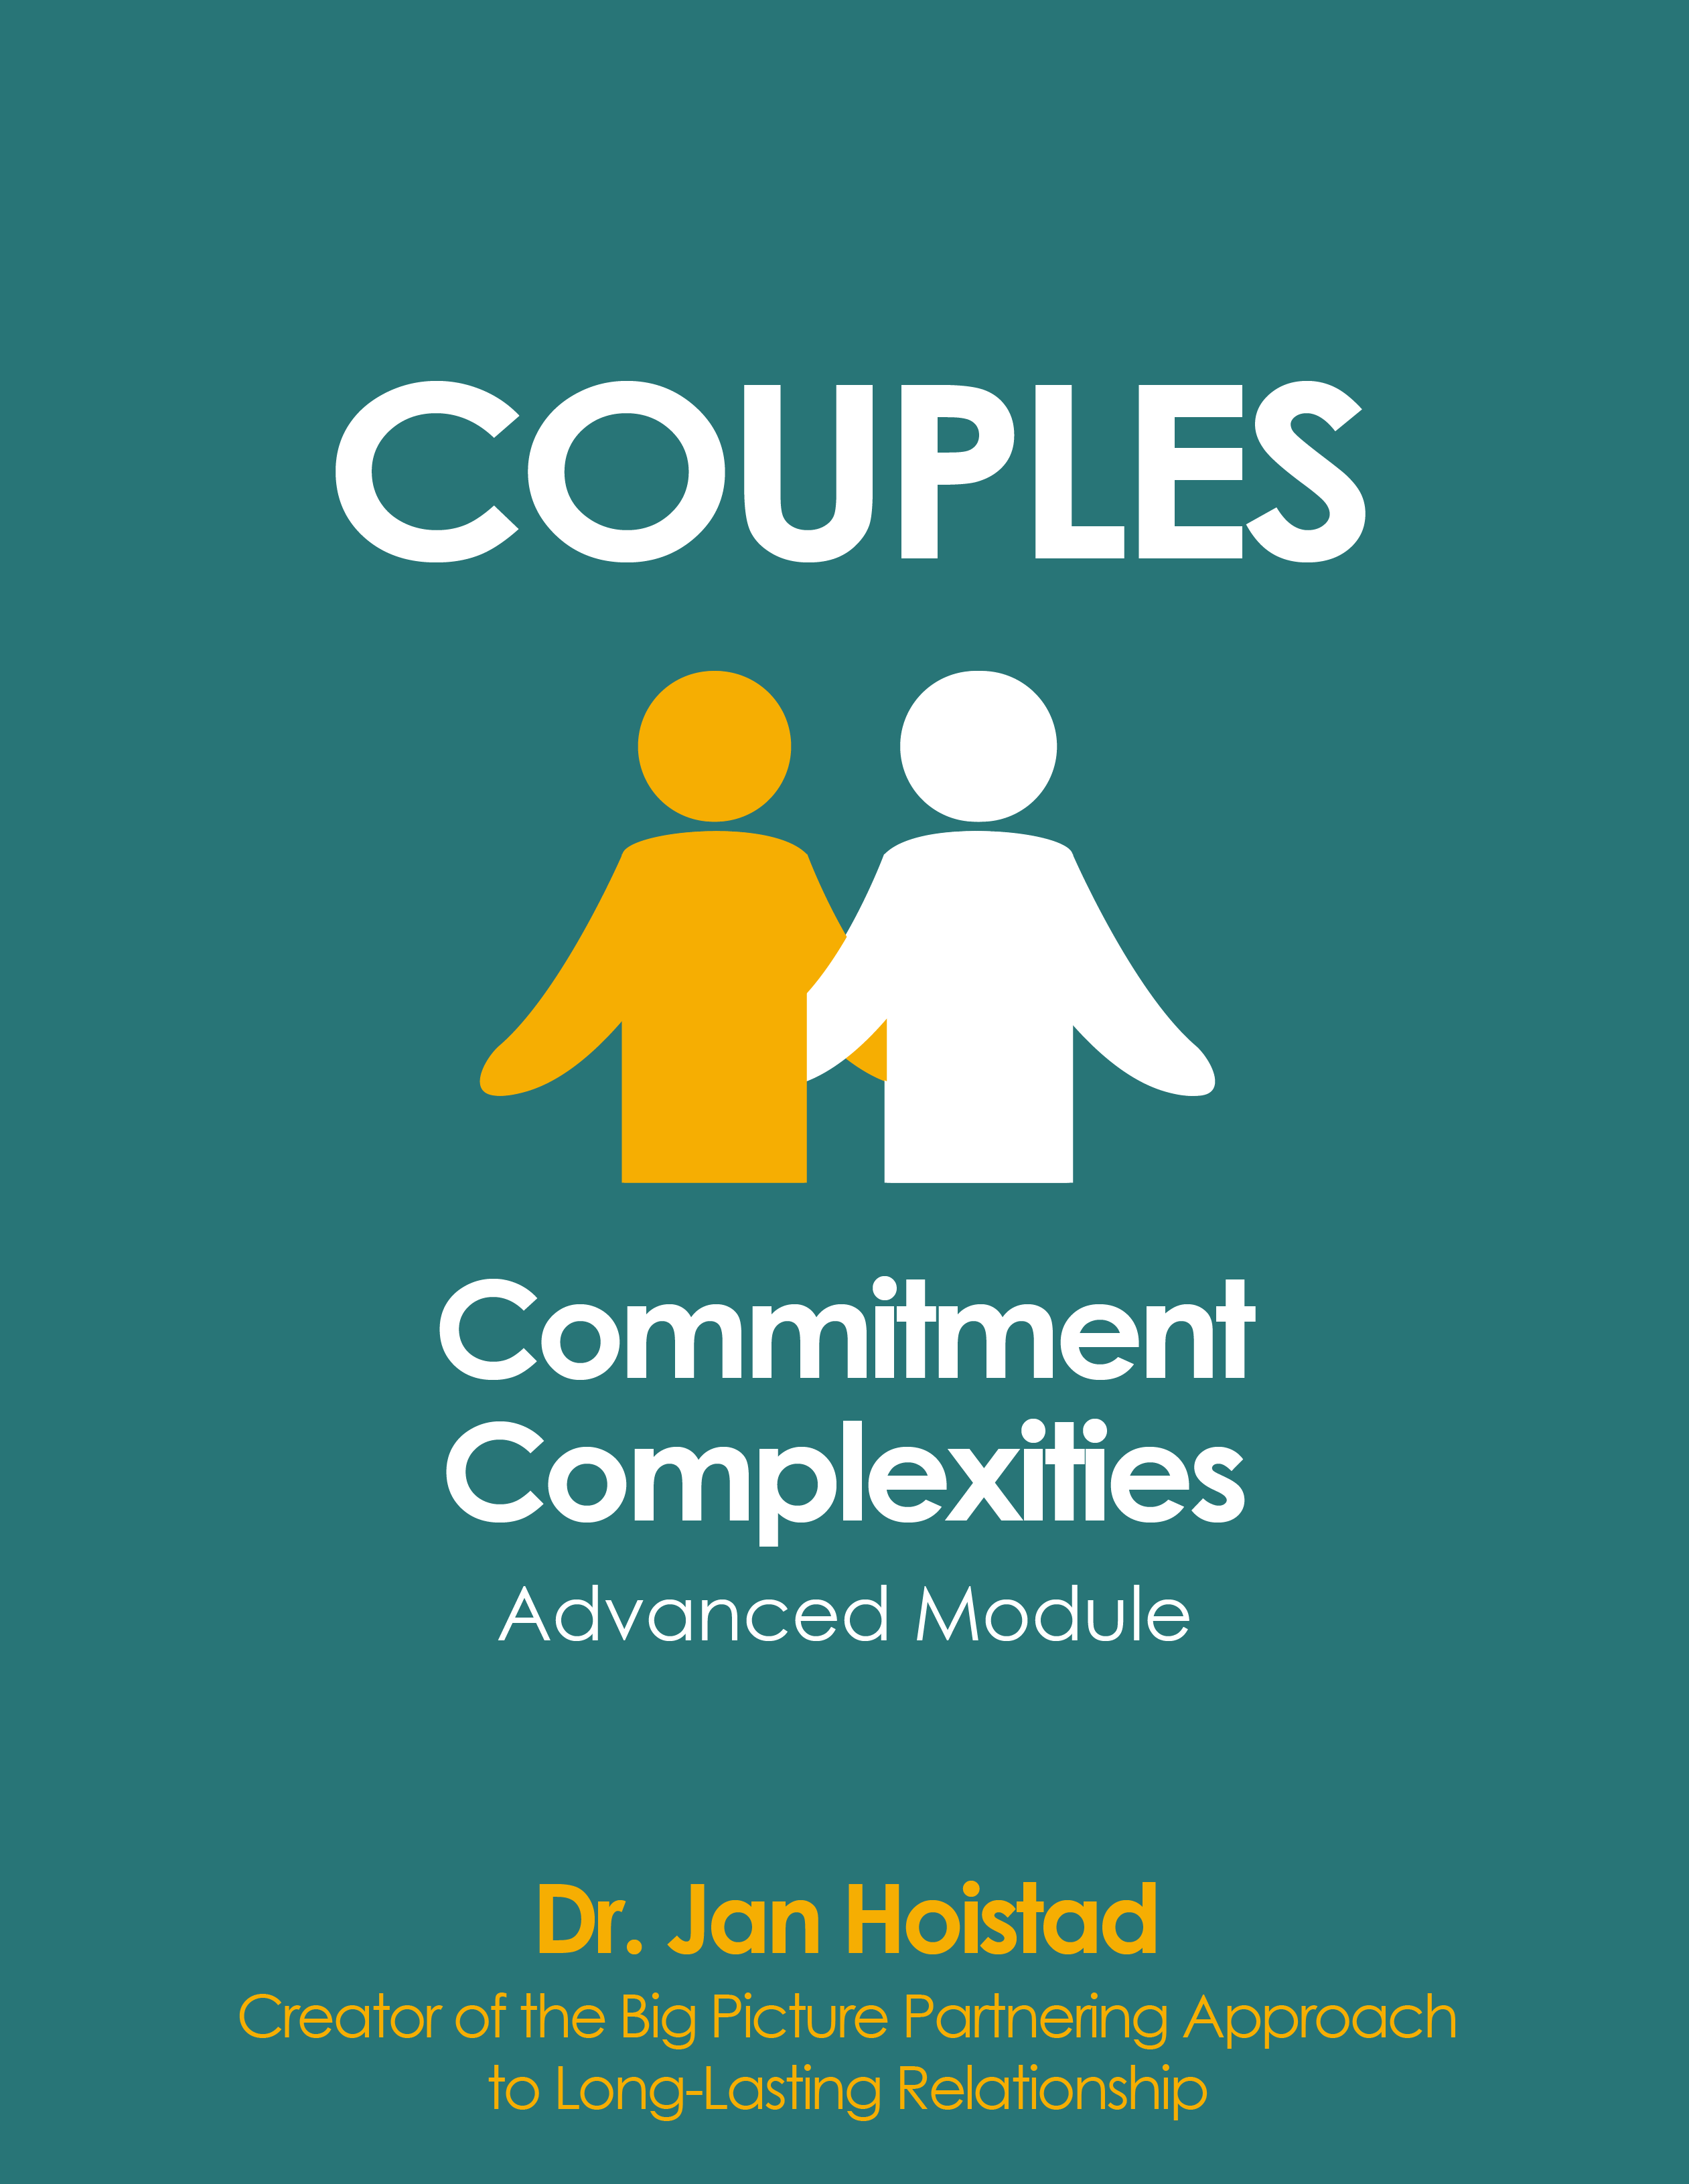 Couples Commitment Complexities Advanced Module - pdf